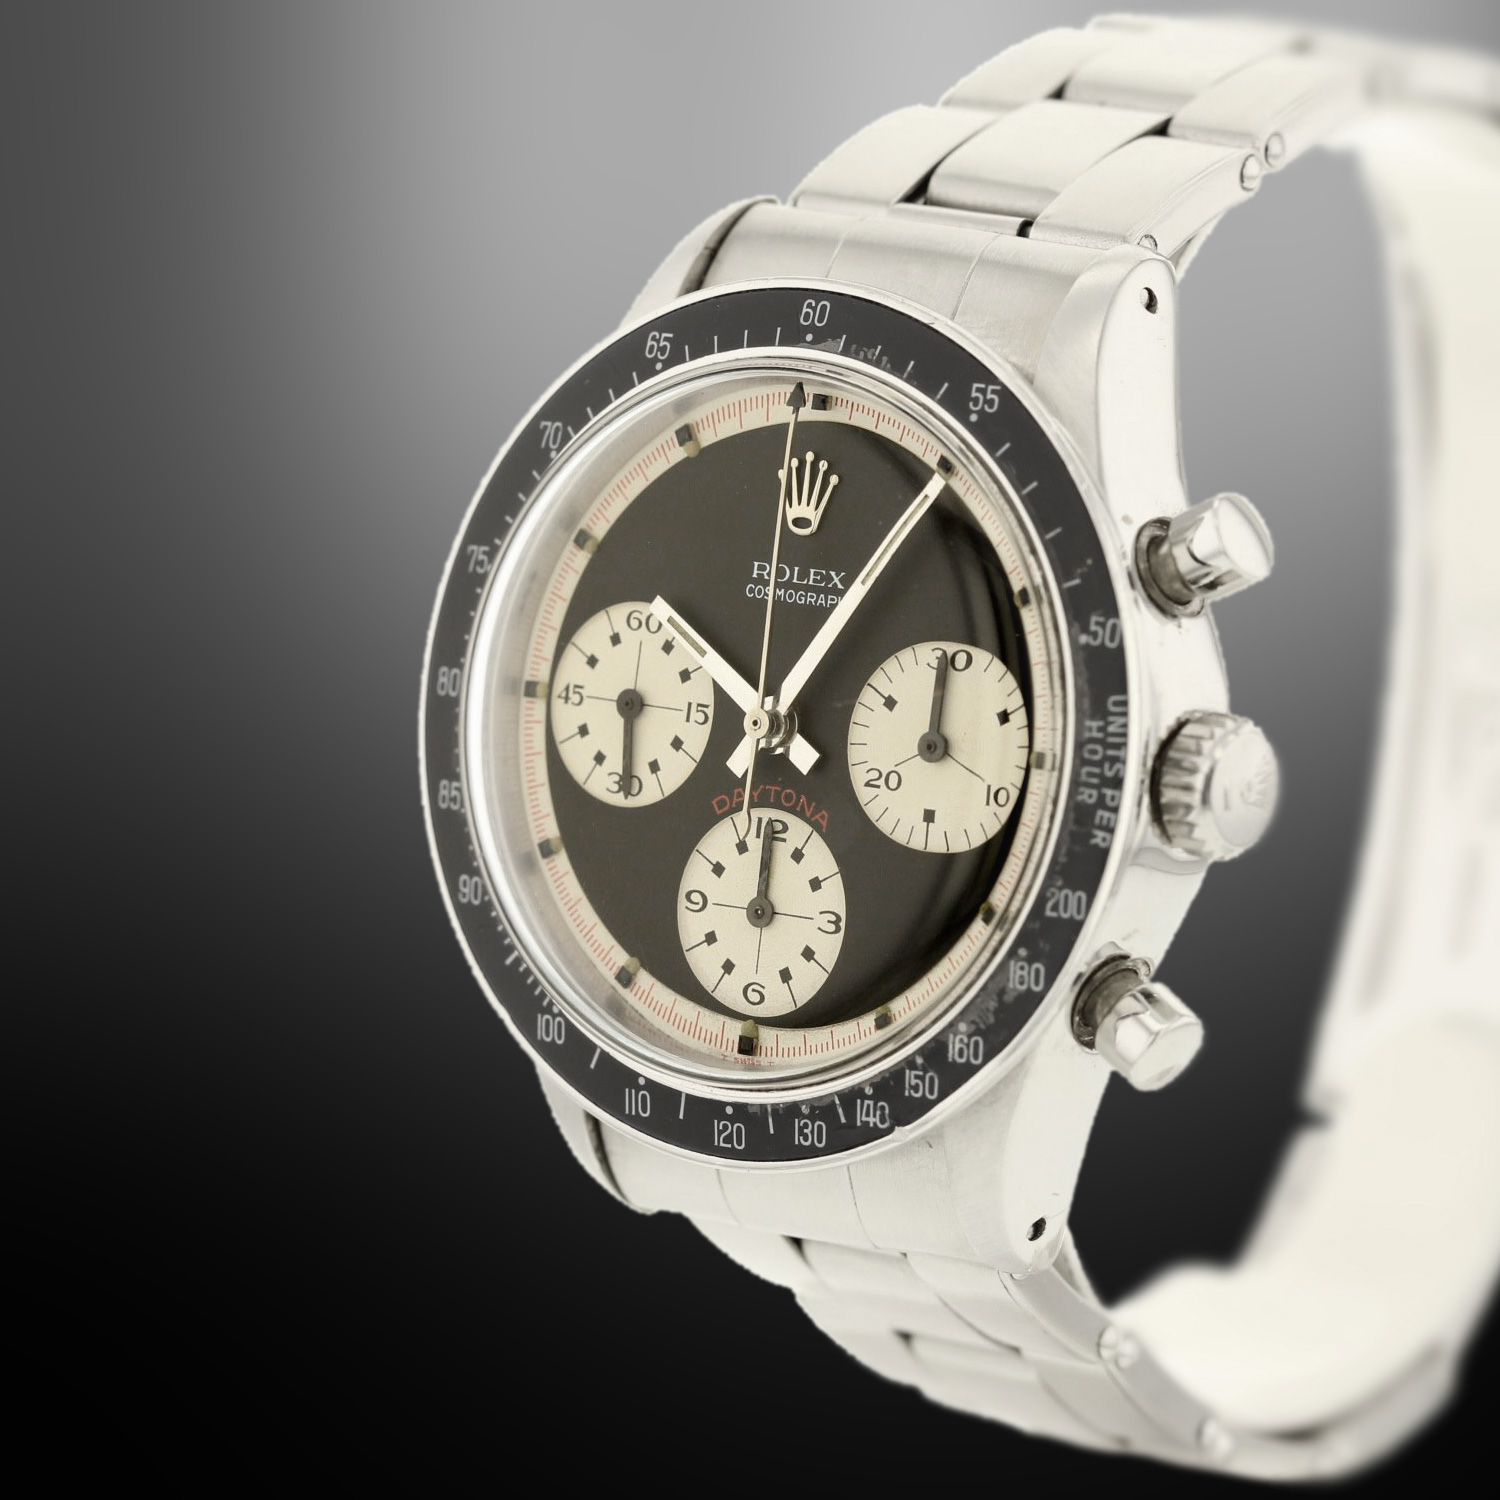 rolex daytona paul newman 6241 full set cadran noir. Black Bedroom Furniture Sets. Home Design Ideas